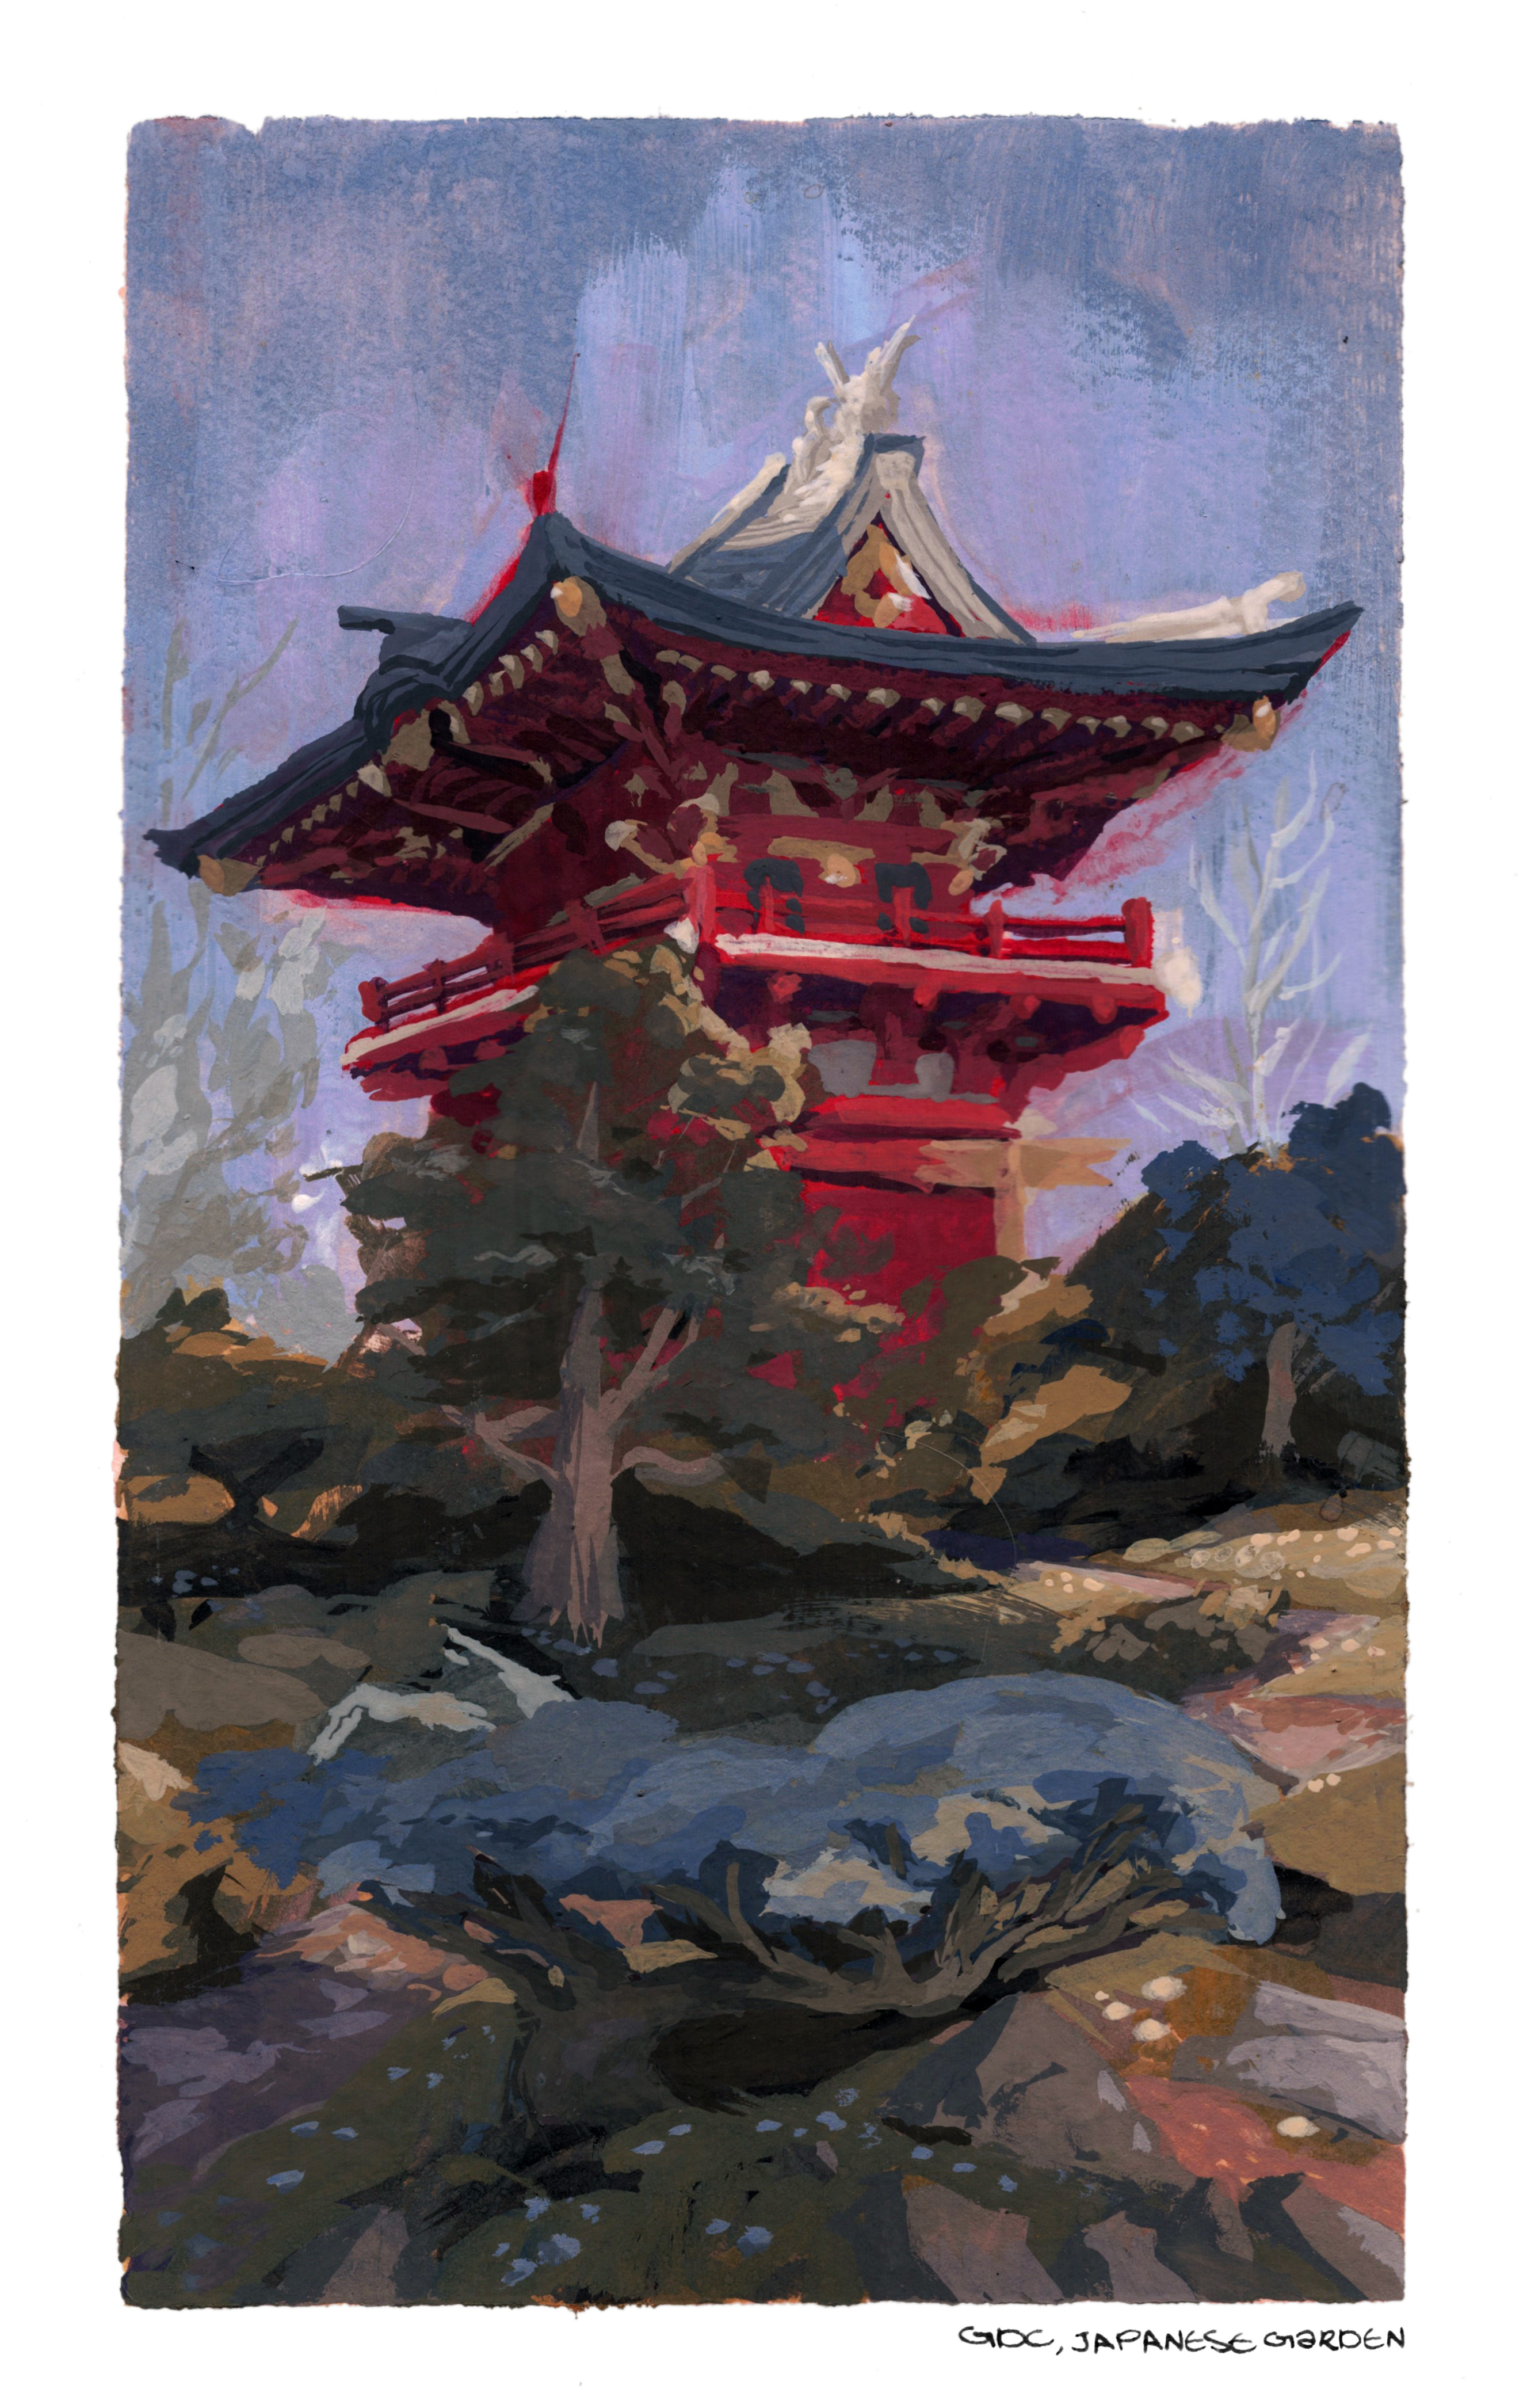 Japanese pagoda in San Fransisco.  I went to GDC this year and got to stop and paint this, which was a challenge! Paint and perspective mistakes are not friends!